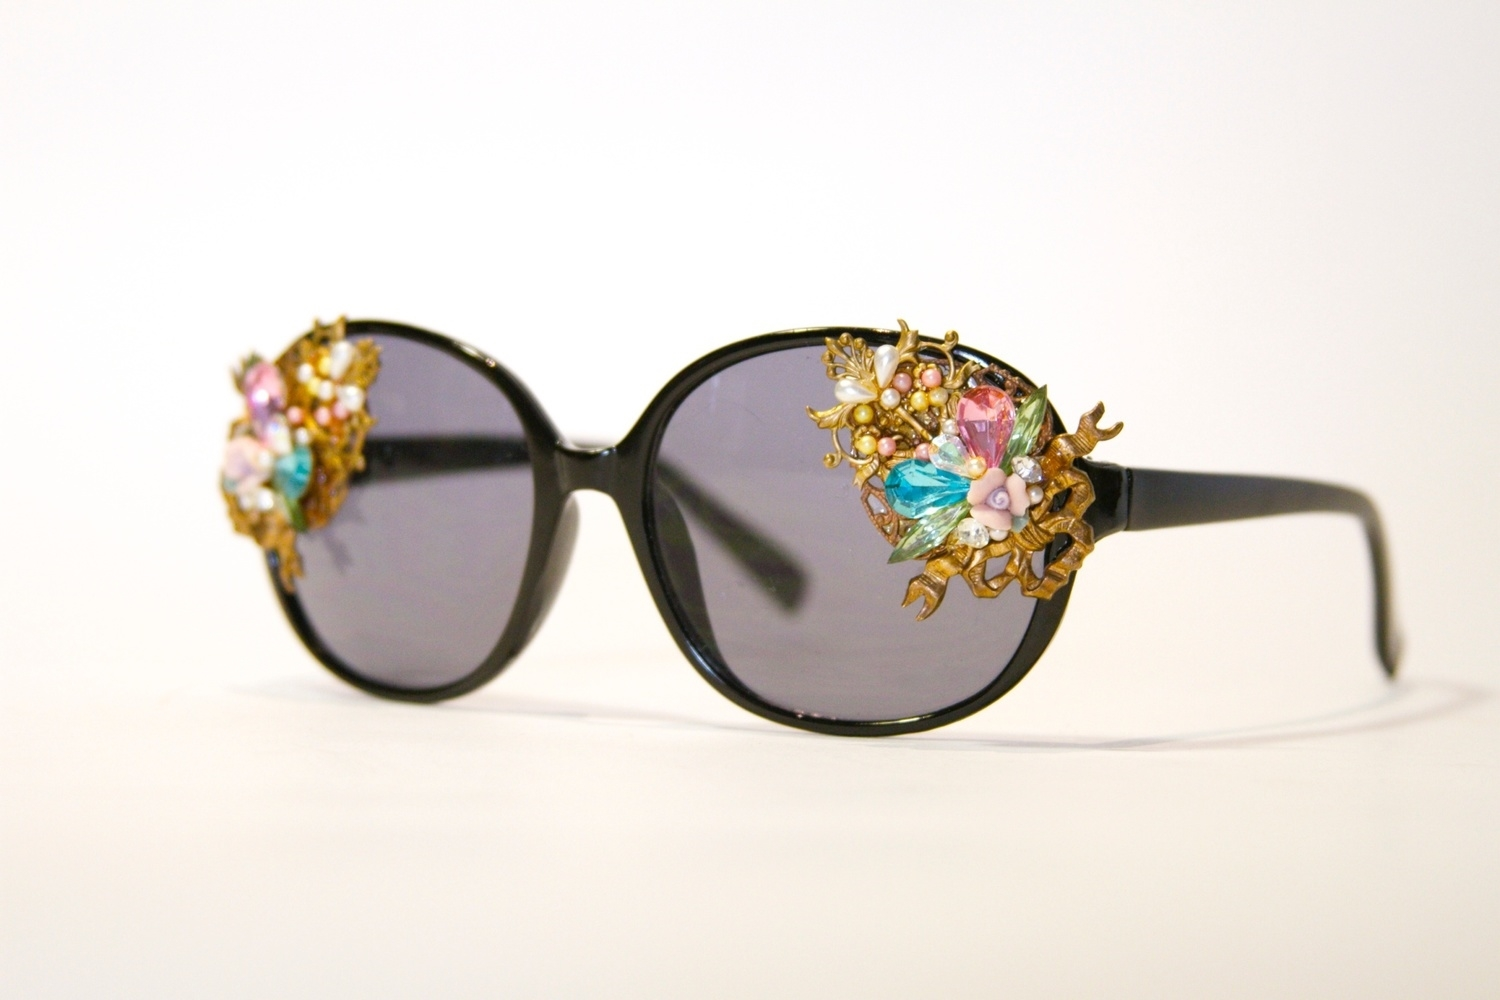 Bejeweled Beauty Sunnies